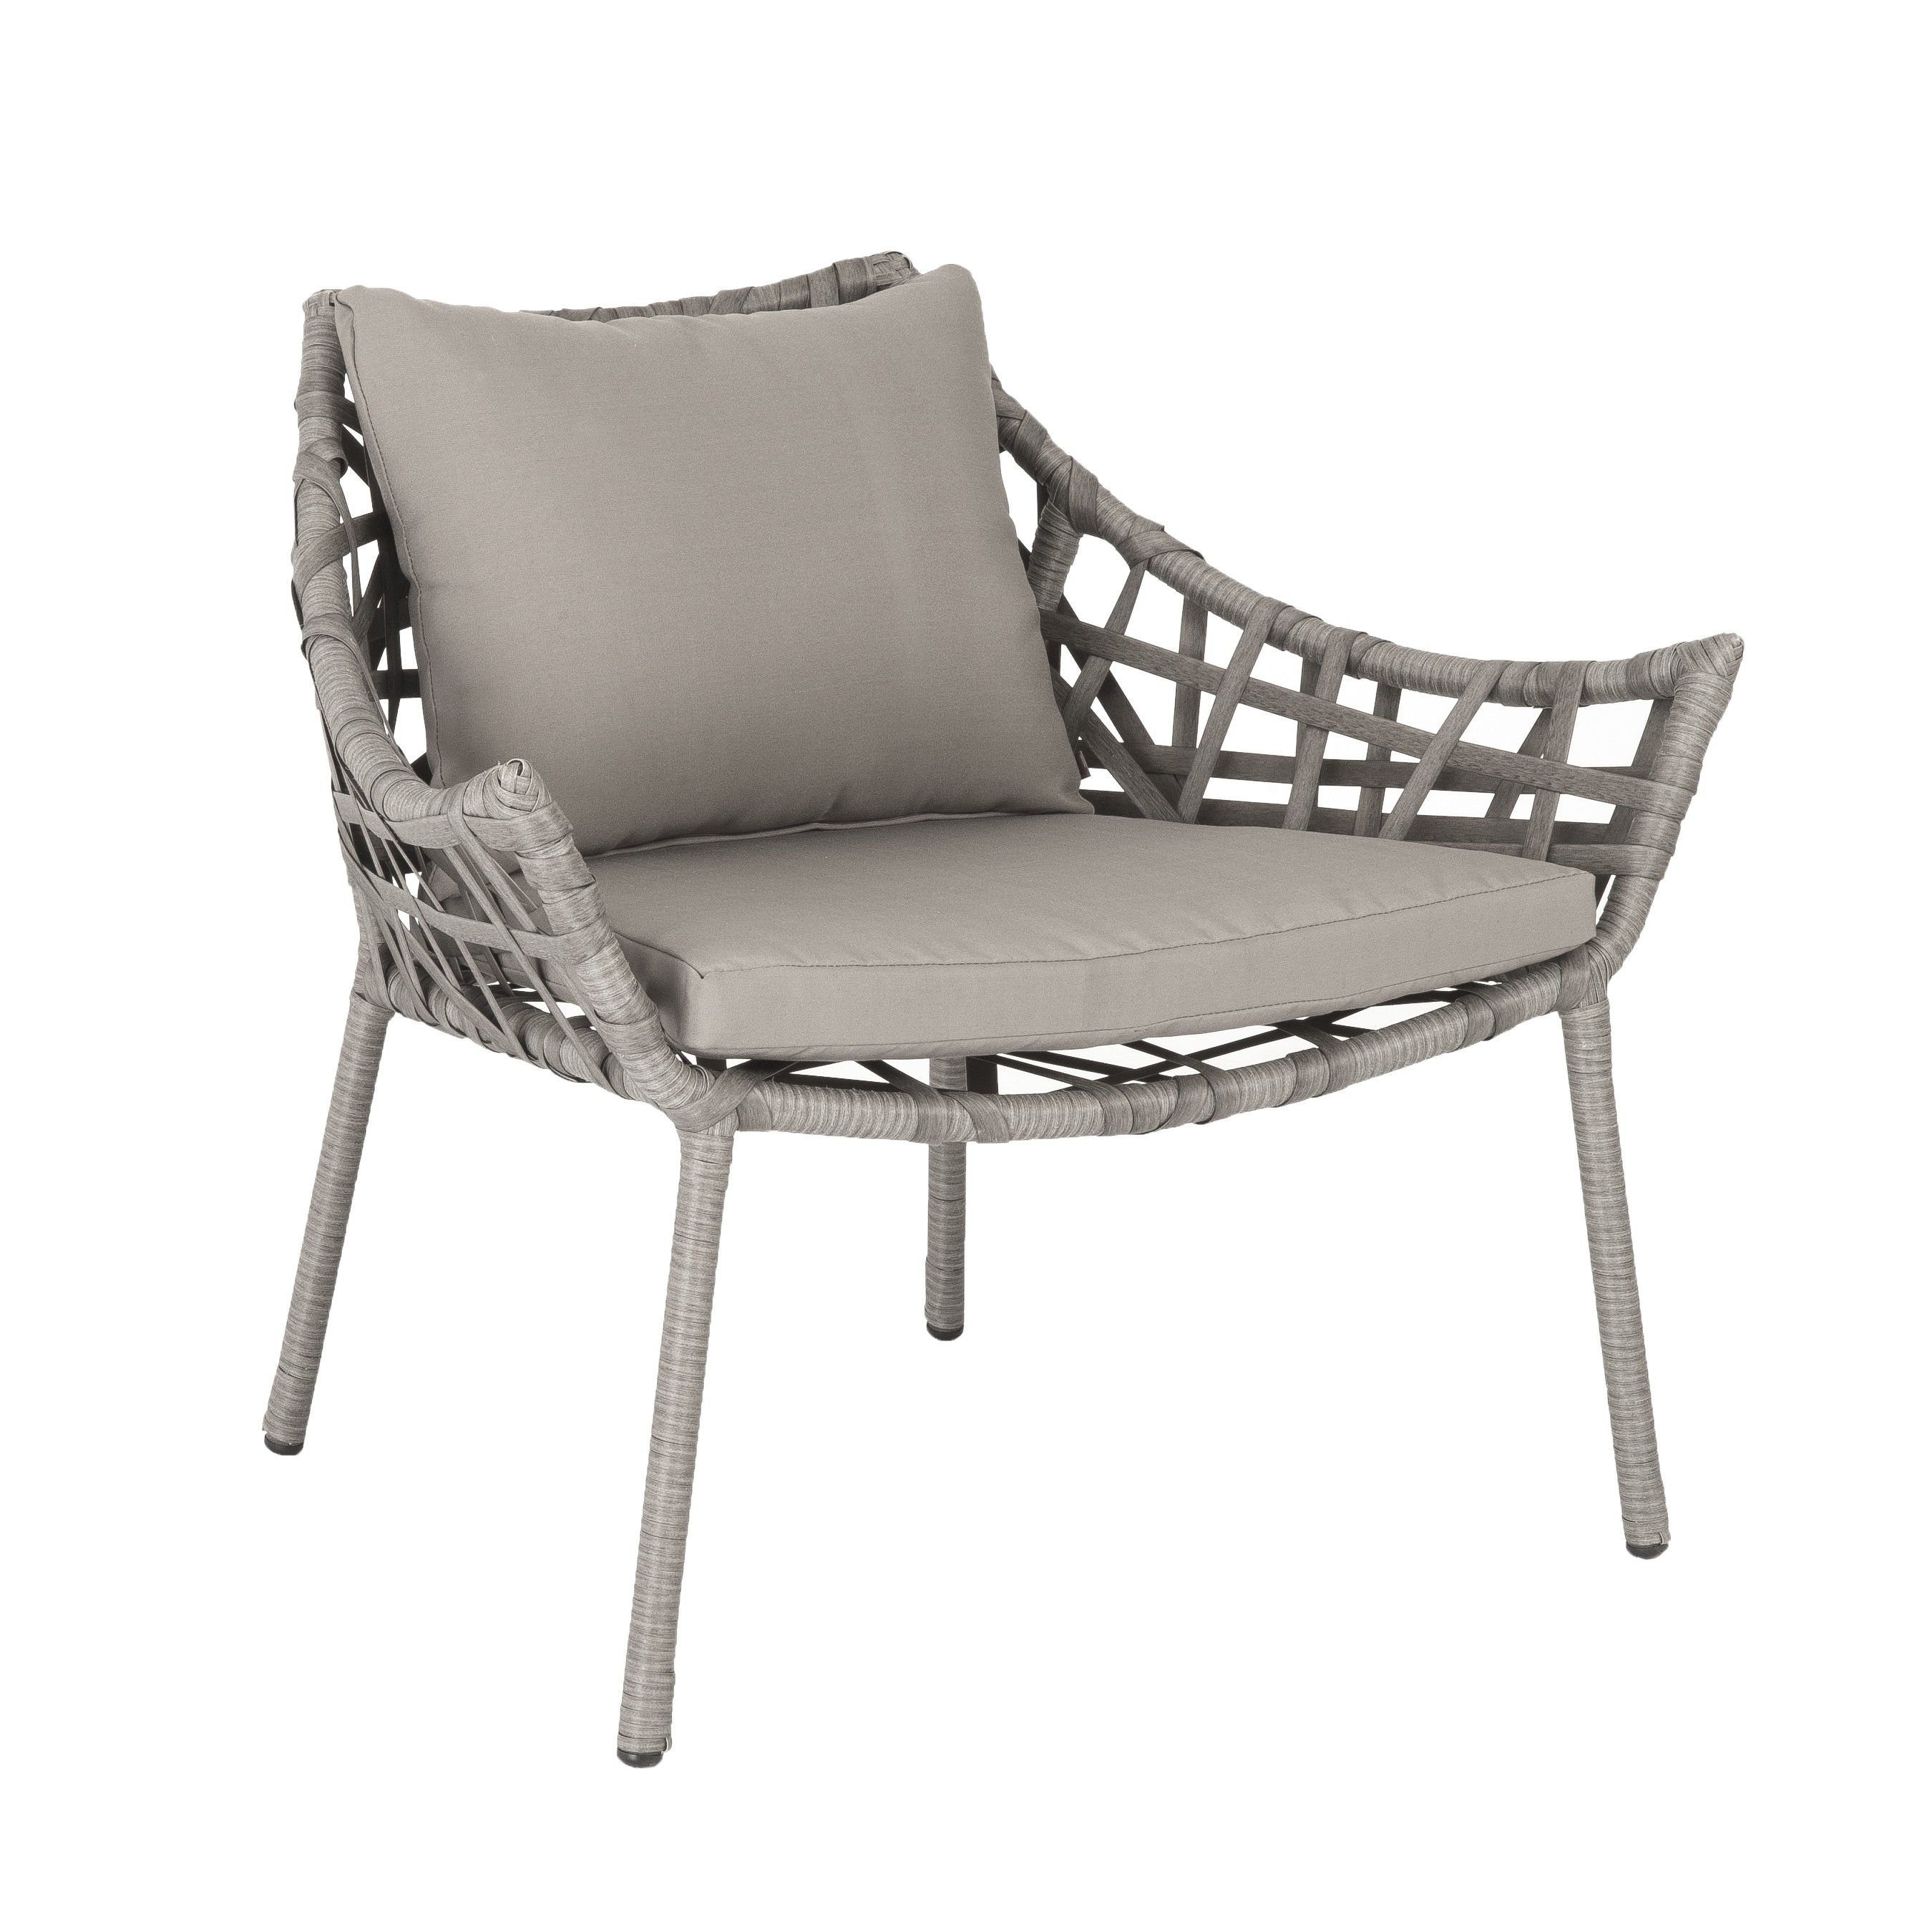 Gazelle Lounge Chair   Taupe By Euro Style   FILL IN